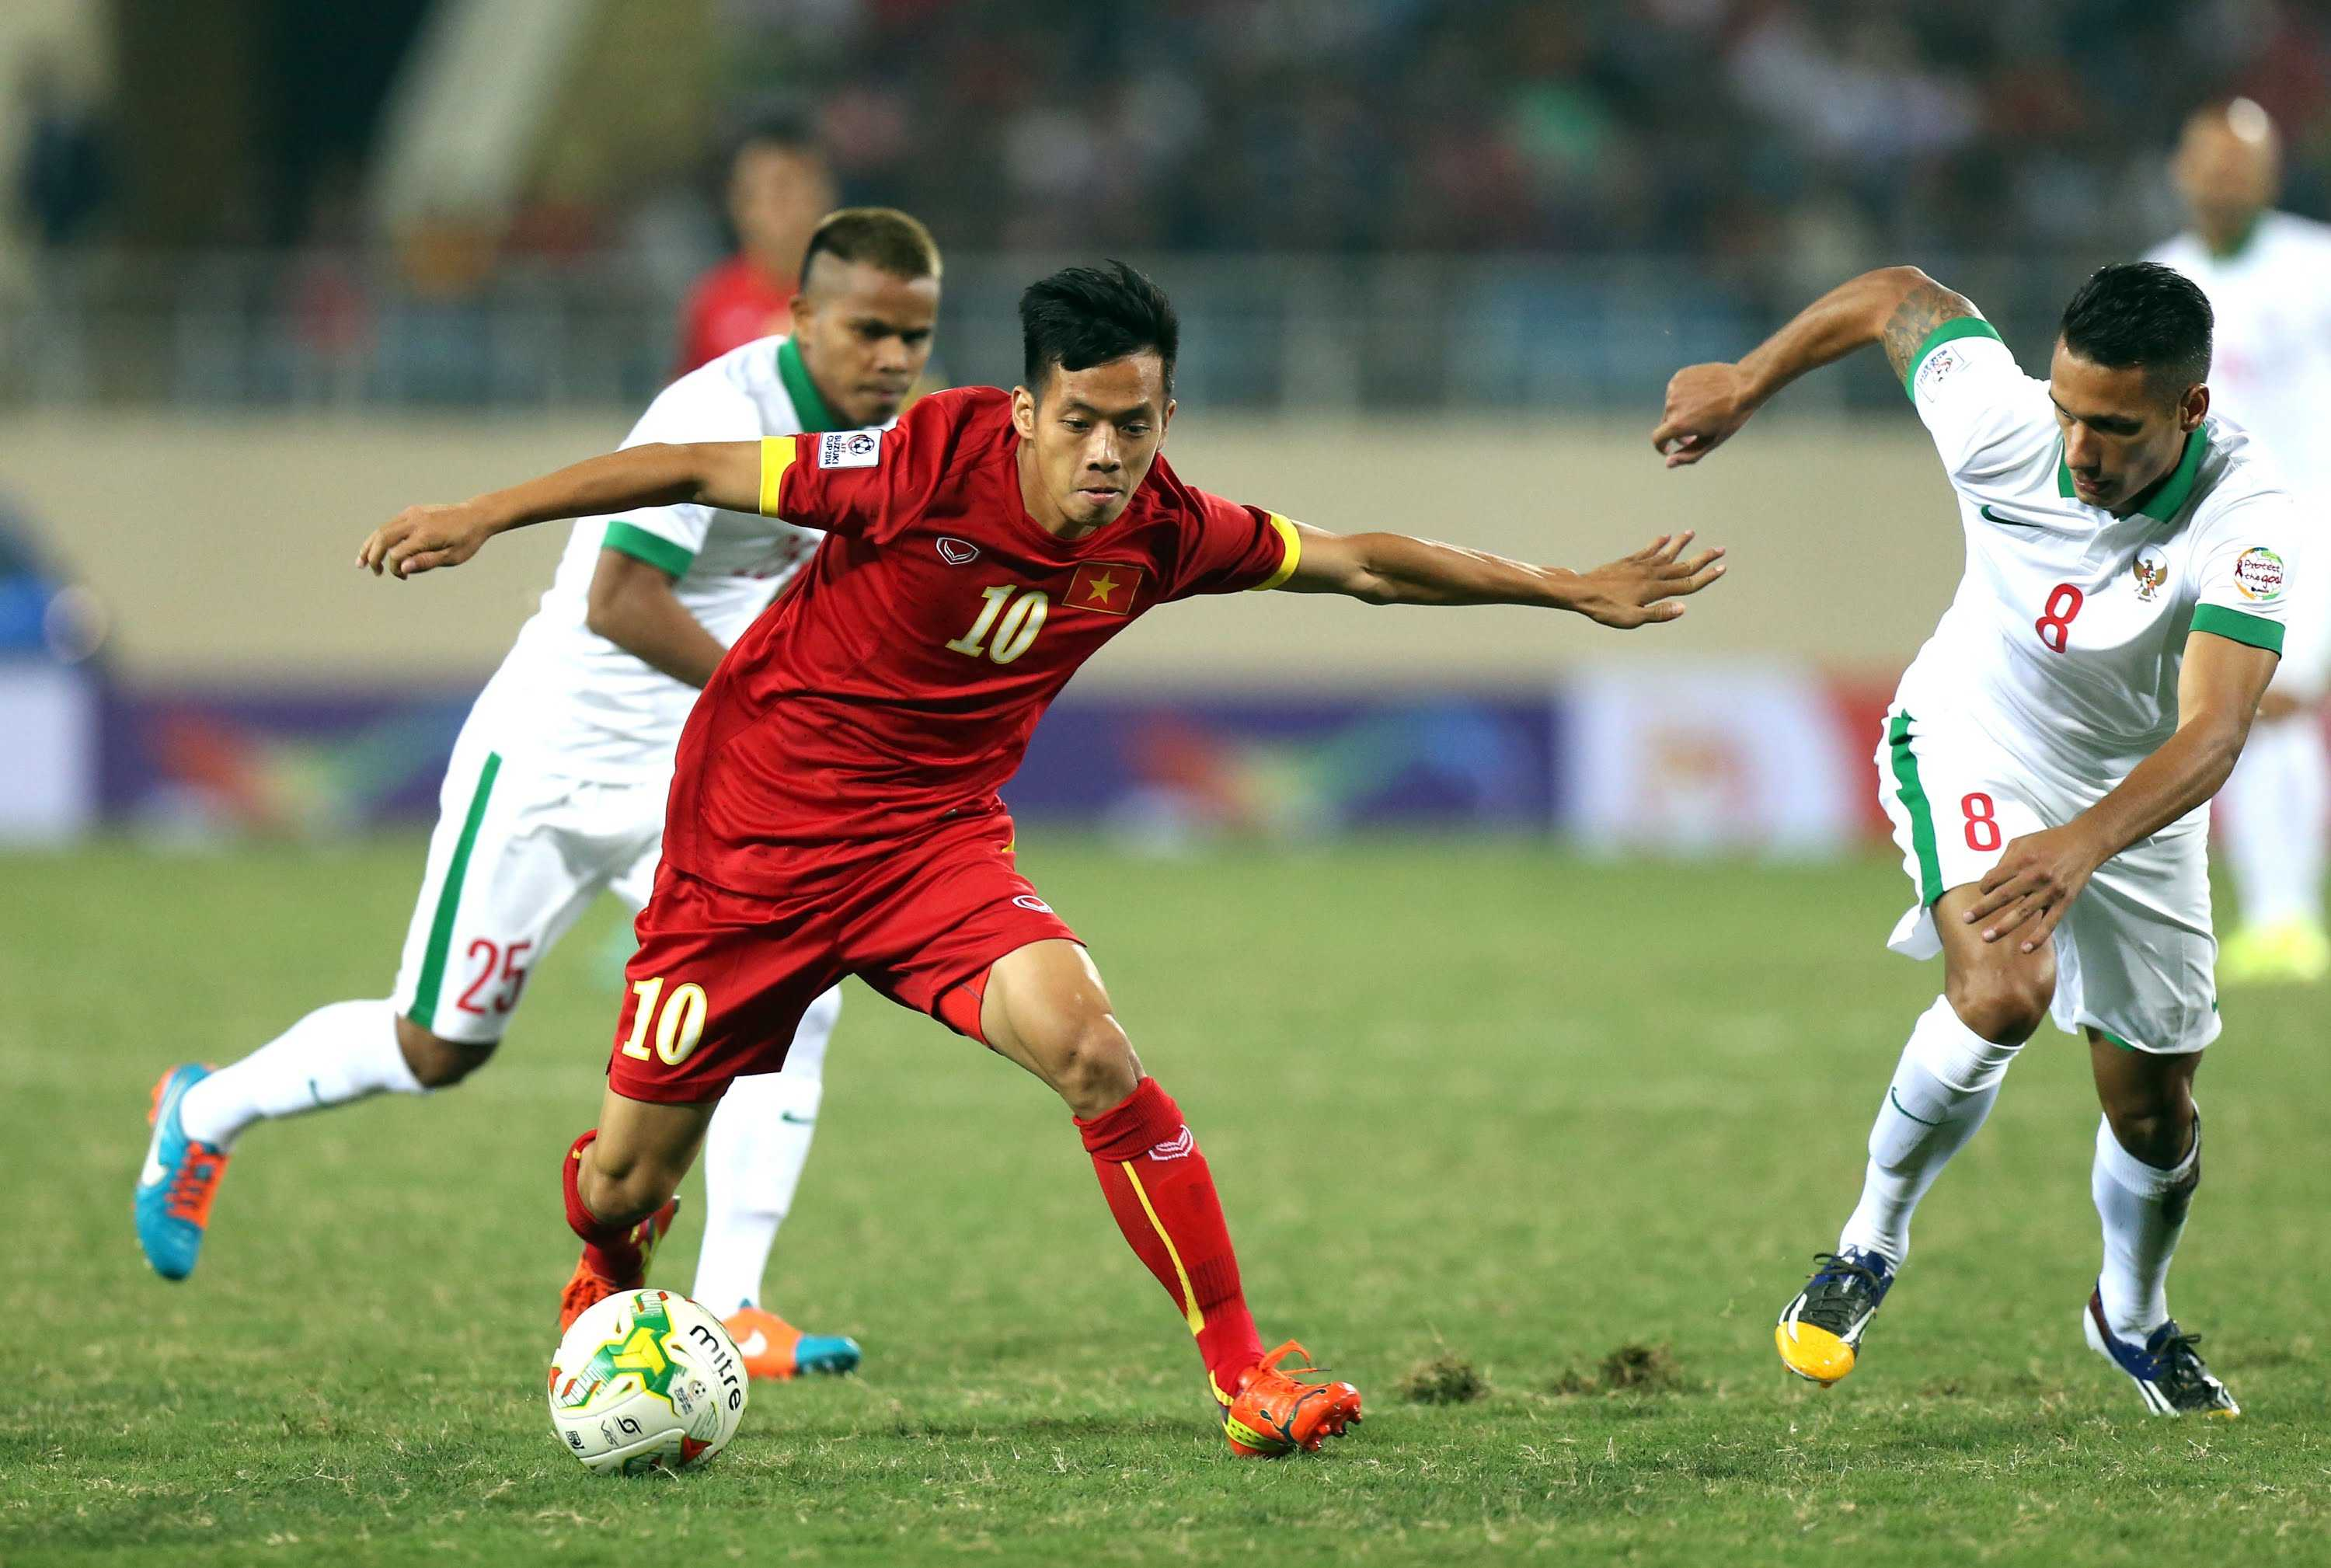 Ban ket AFF Cup: Viet Nam luon that the khi doi dau Indonesia hinh anh 1